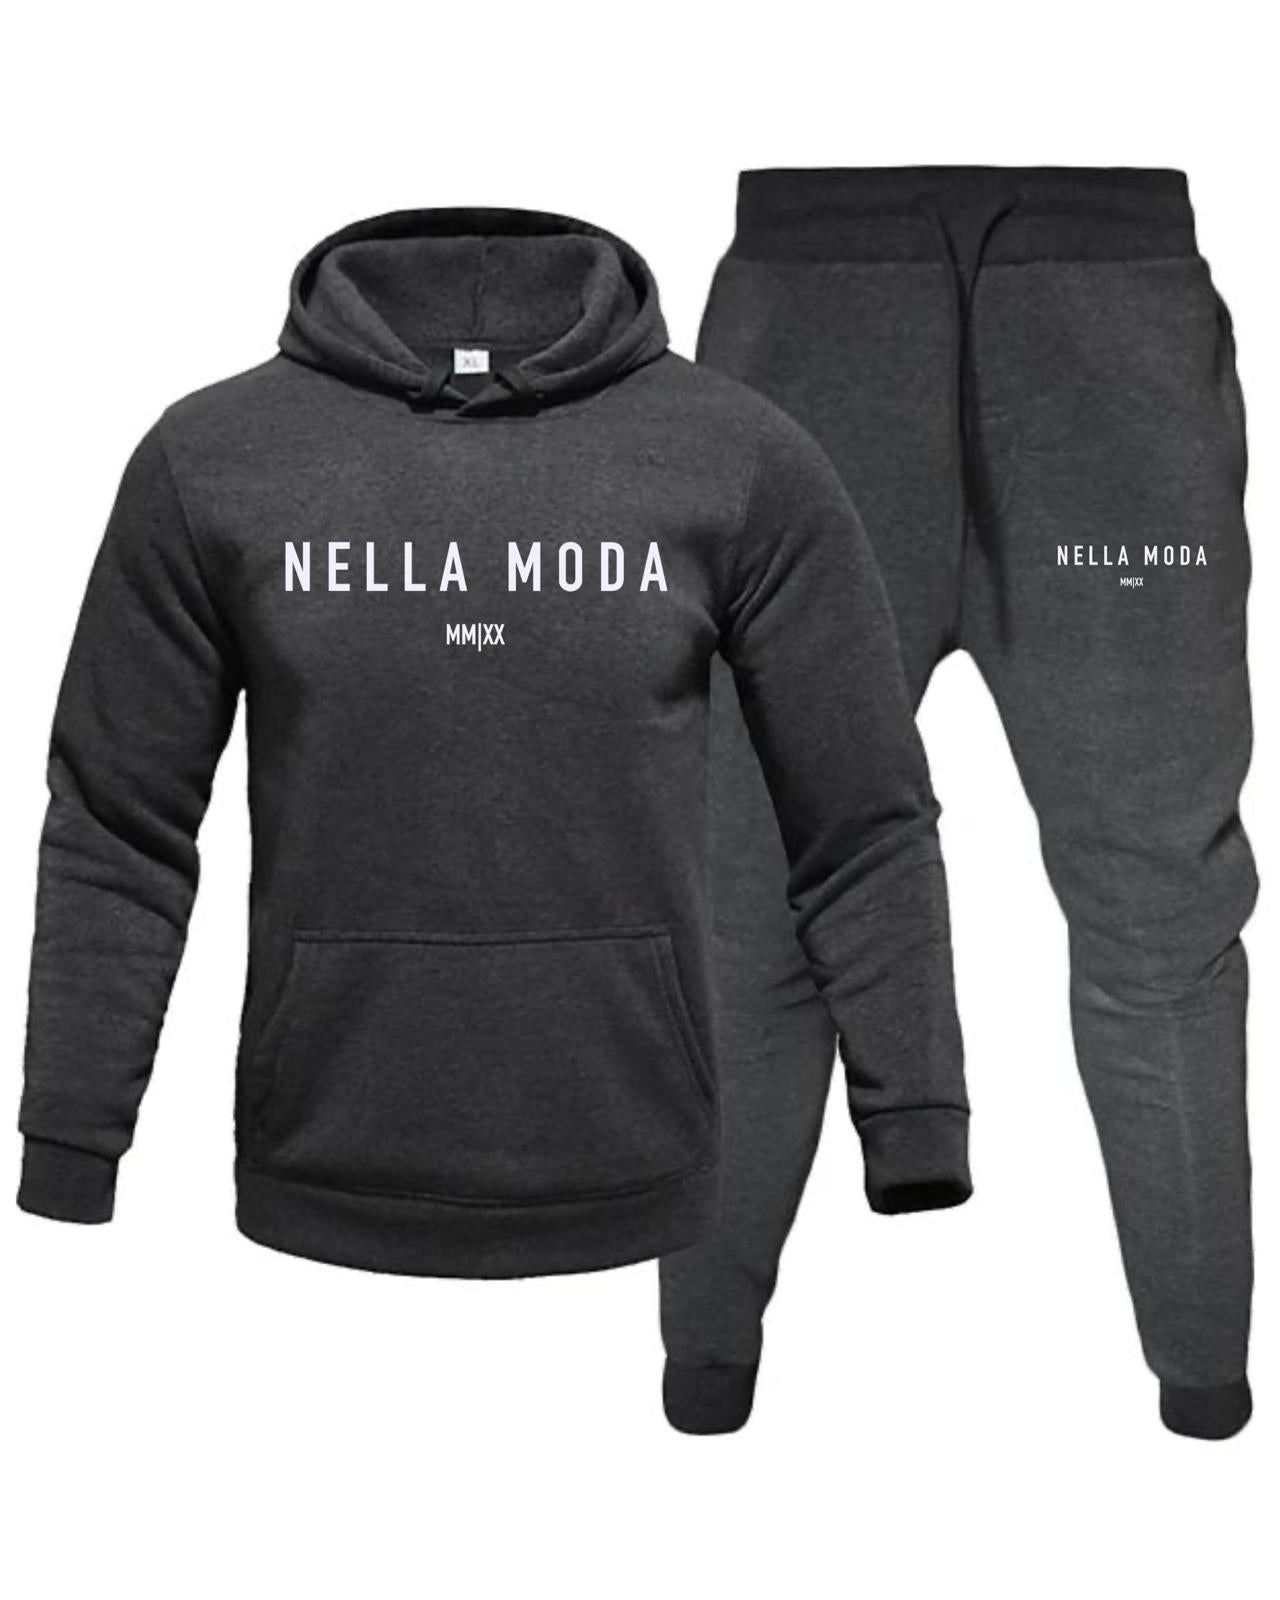 Nella Moda Slim Fit Hooded Tracksuit -  Dark Grey